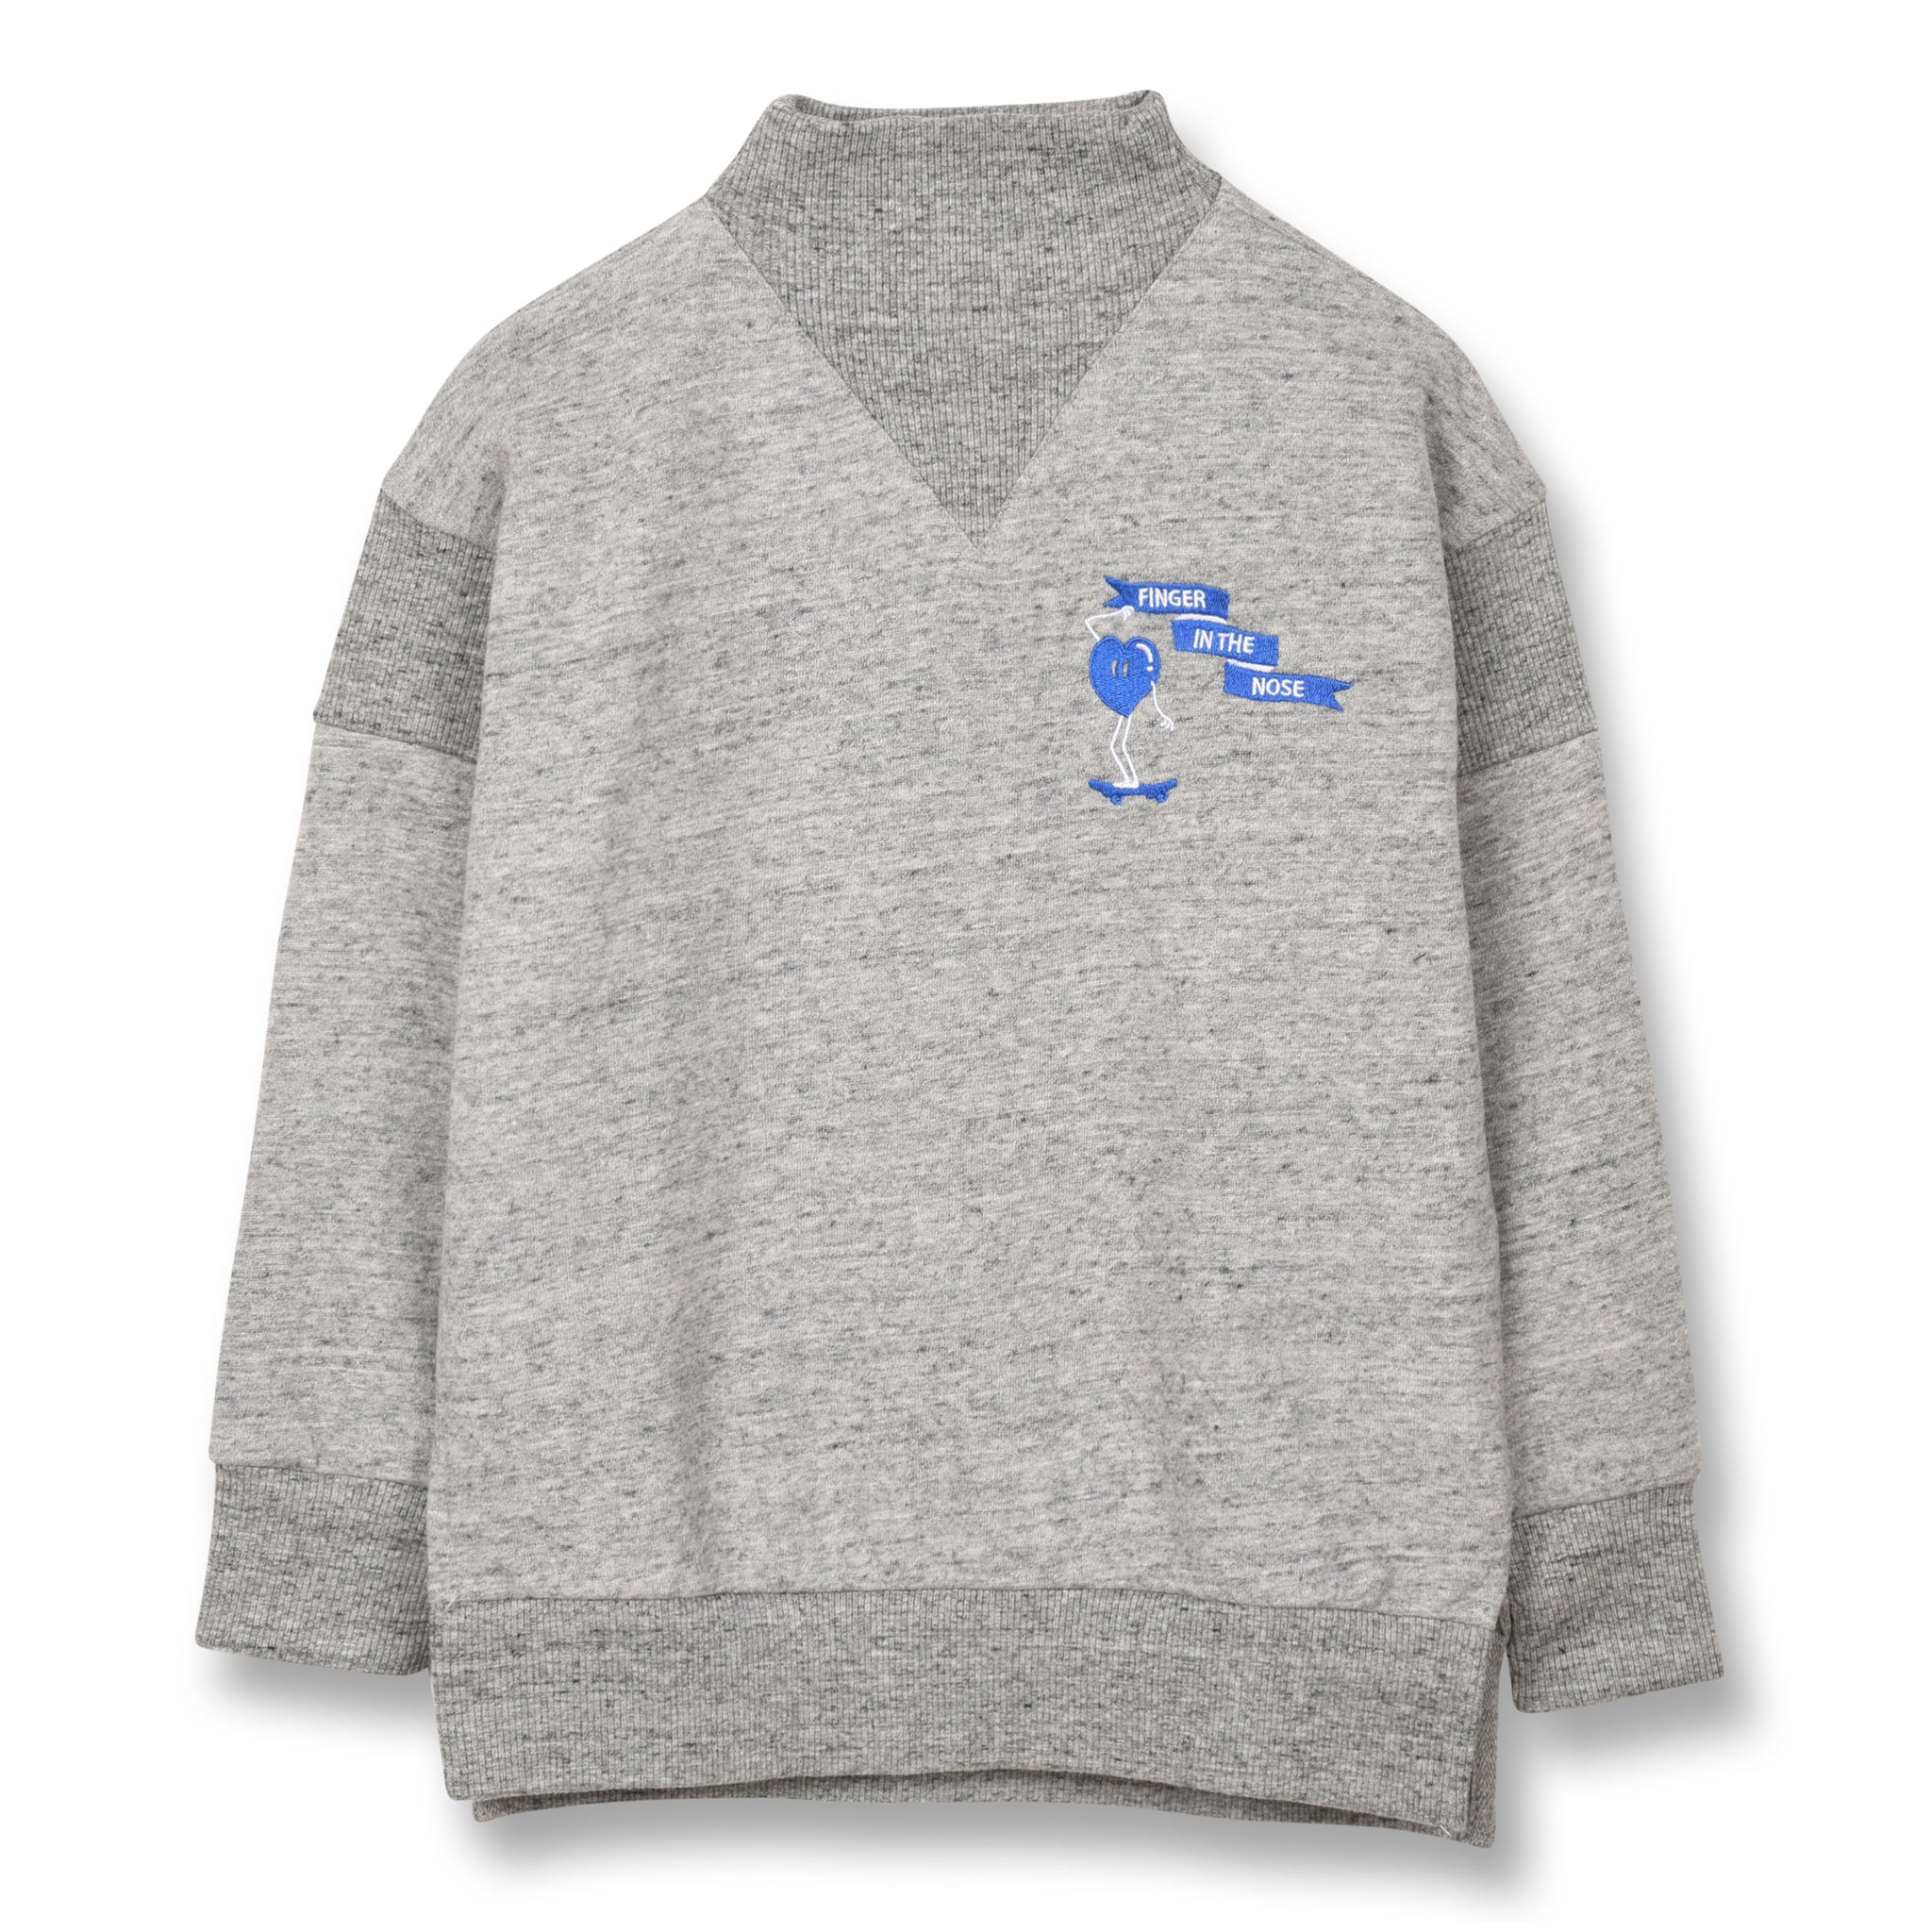 STANCE Heather Grey Skate Heart - Loose Fit Sweatshirt 1